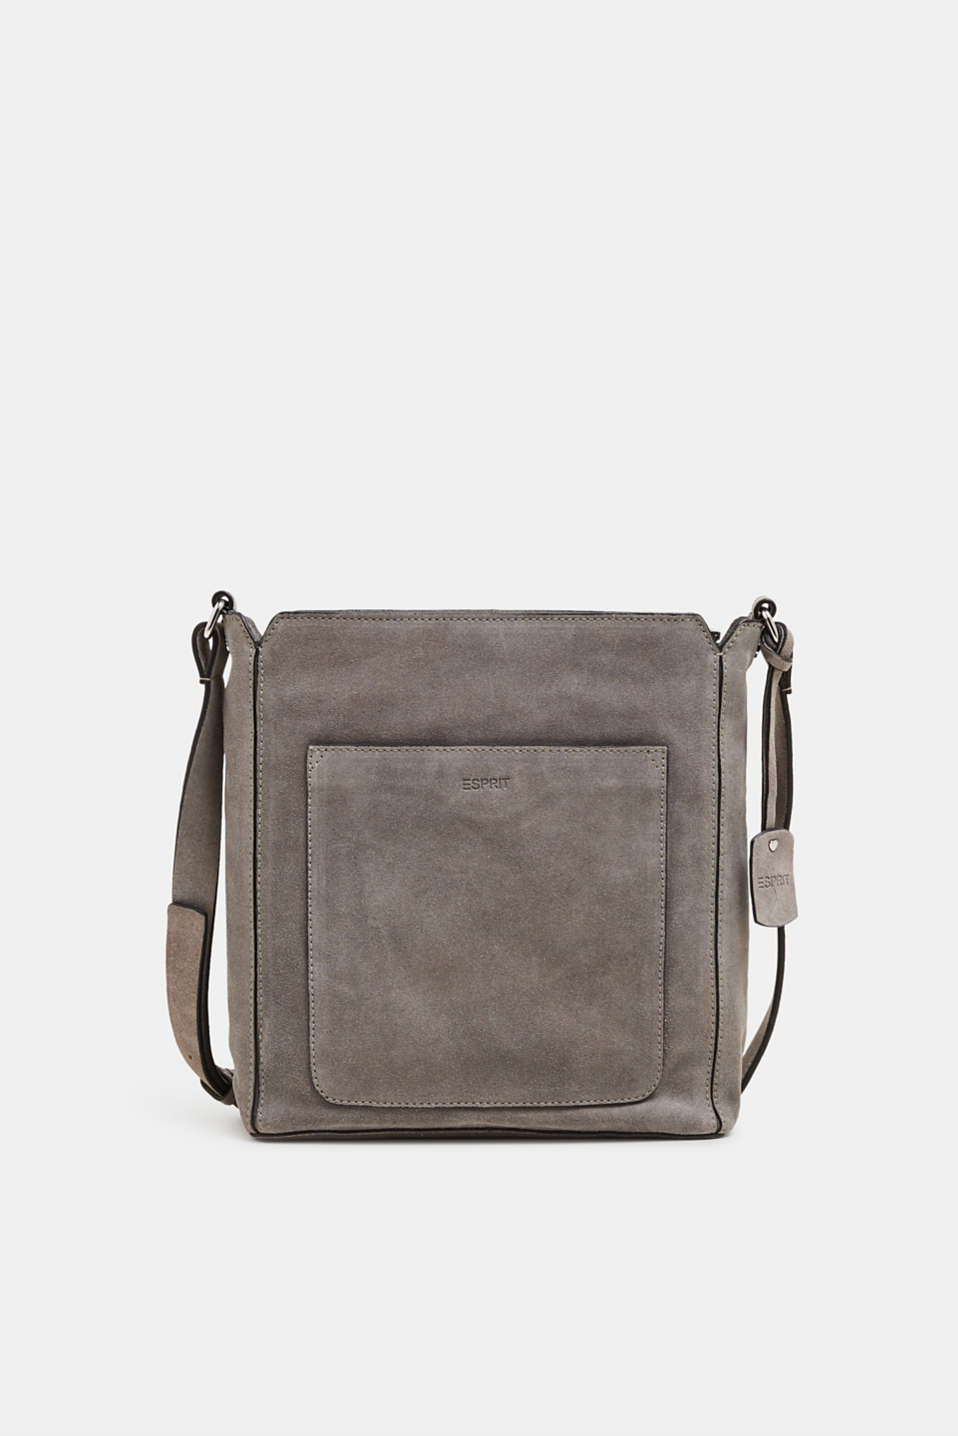 Esprit - Leather shoulder bag